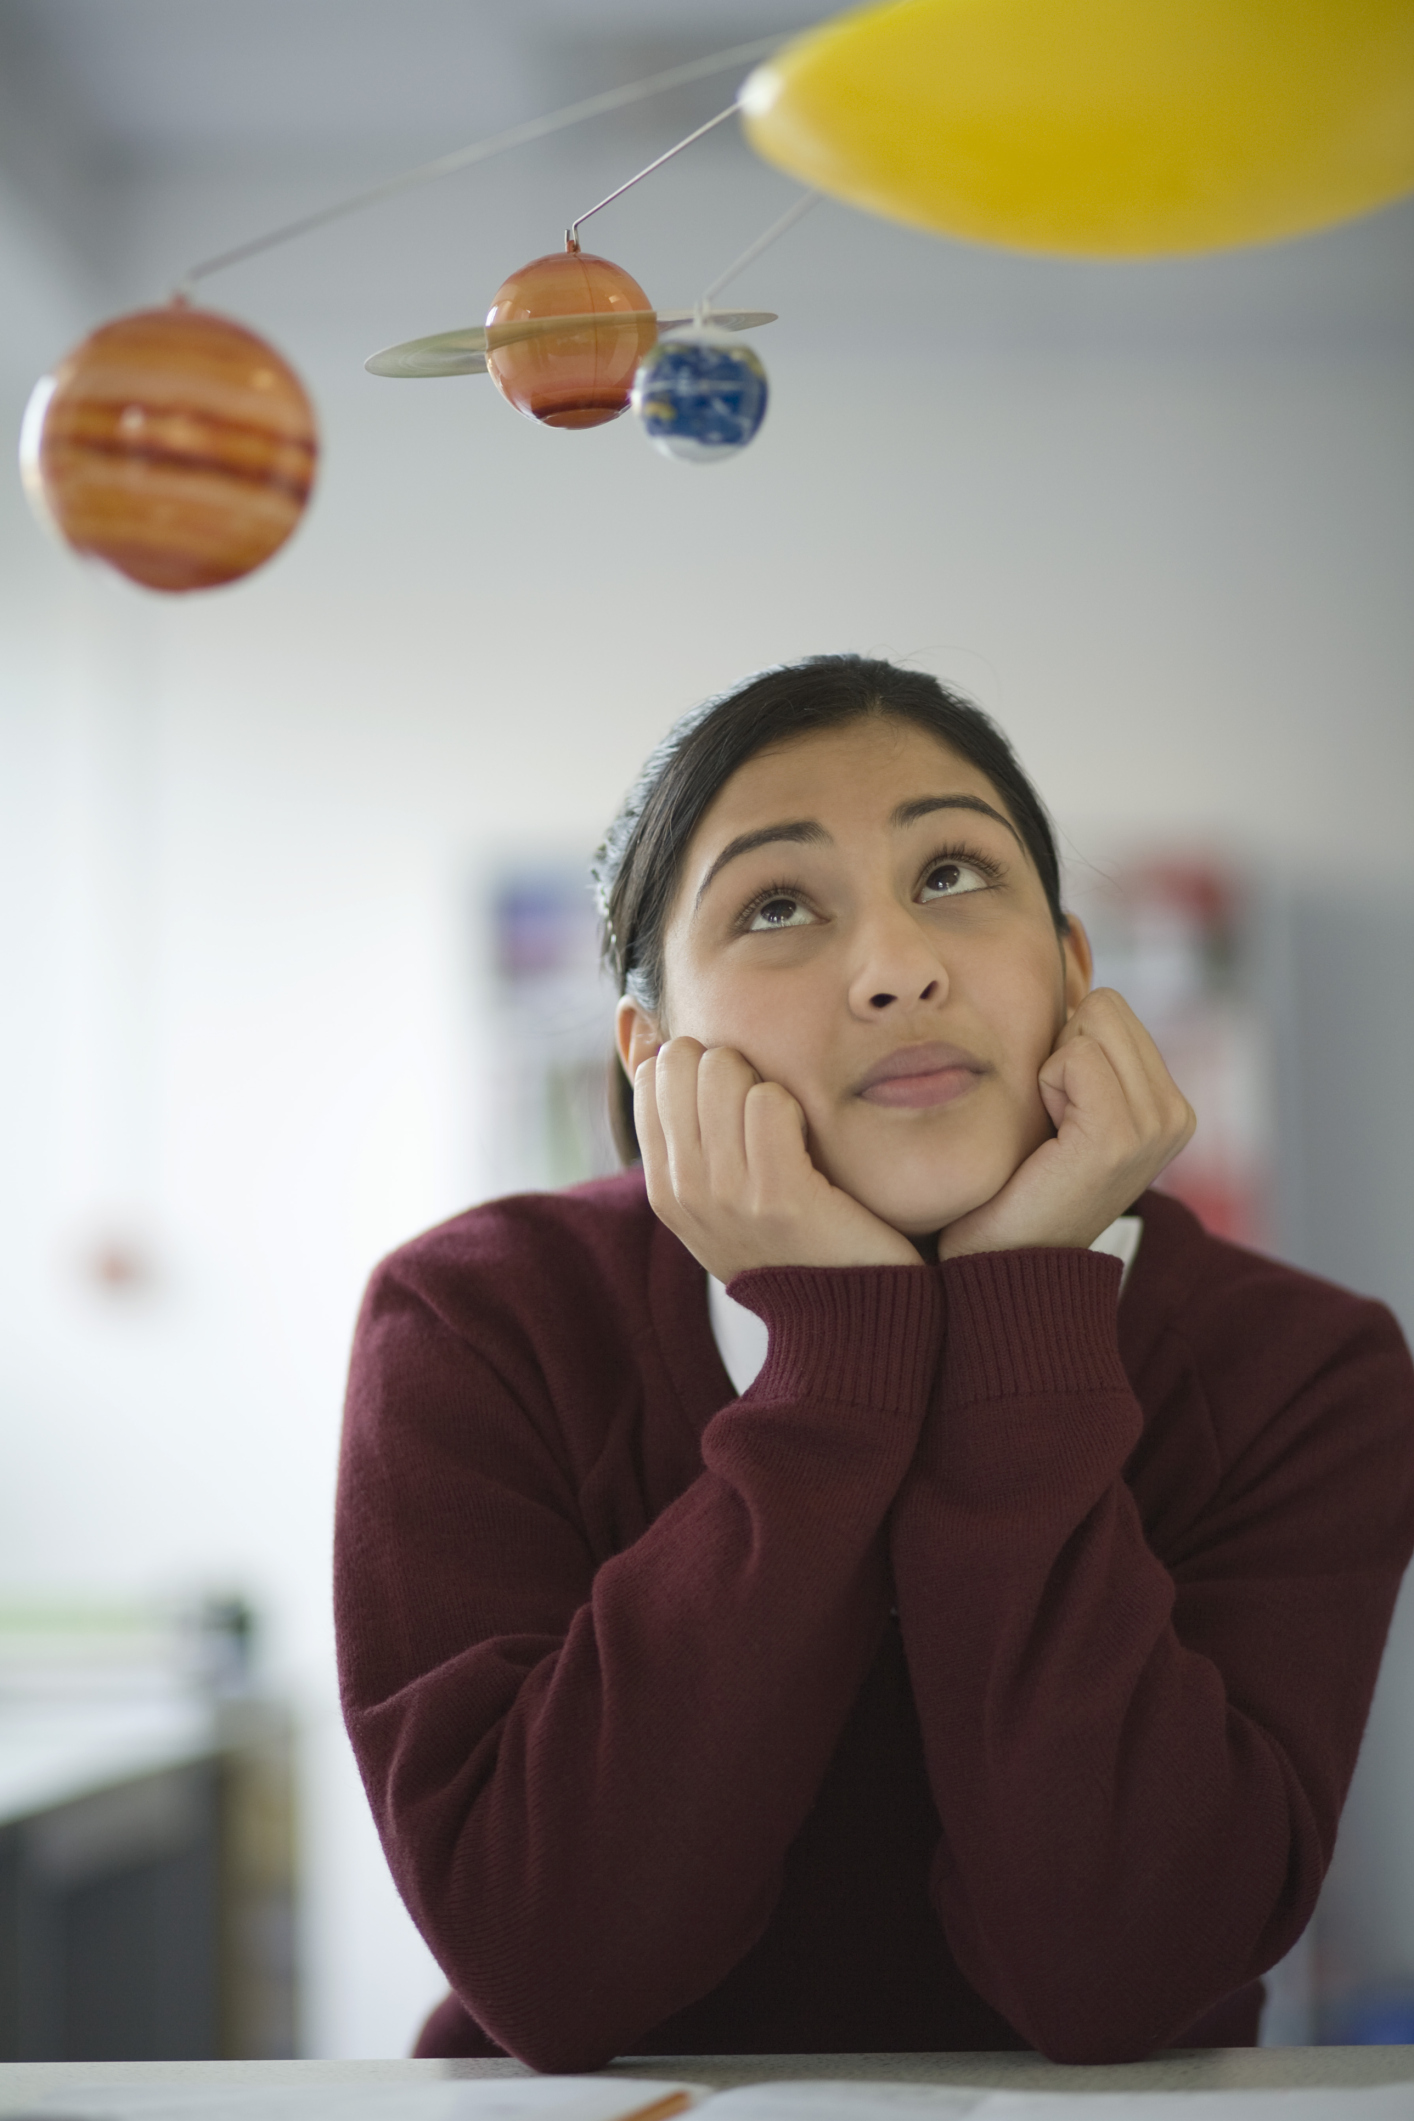 Why having incompetent teachers can affect student performance